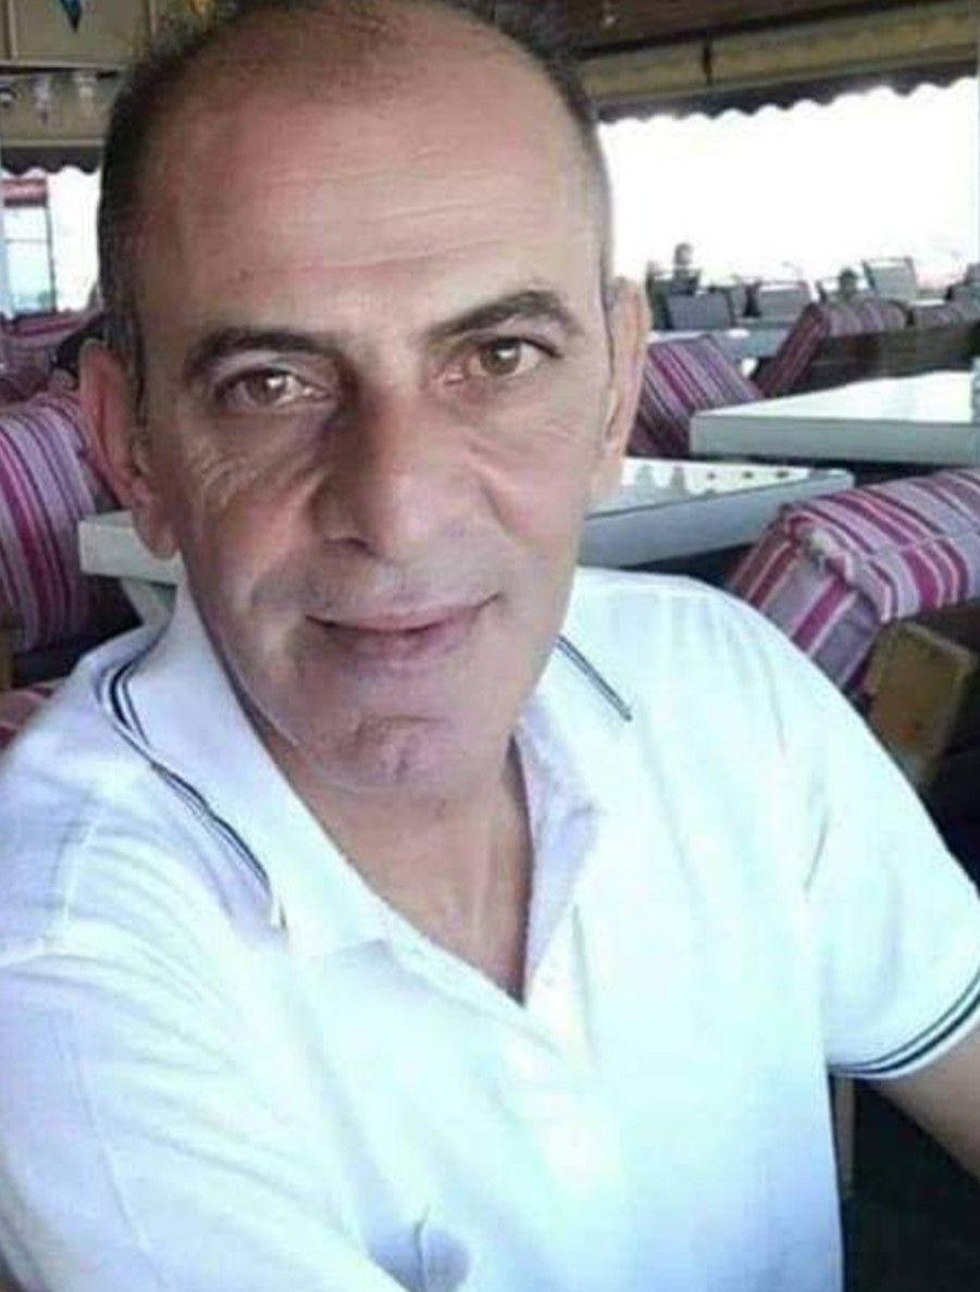 Mohammed Abdel Hamid Abu Isbah was killed in the direct hit in Ashkelon